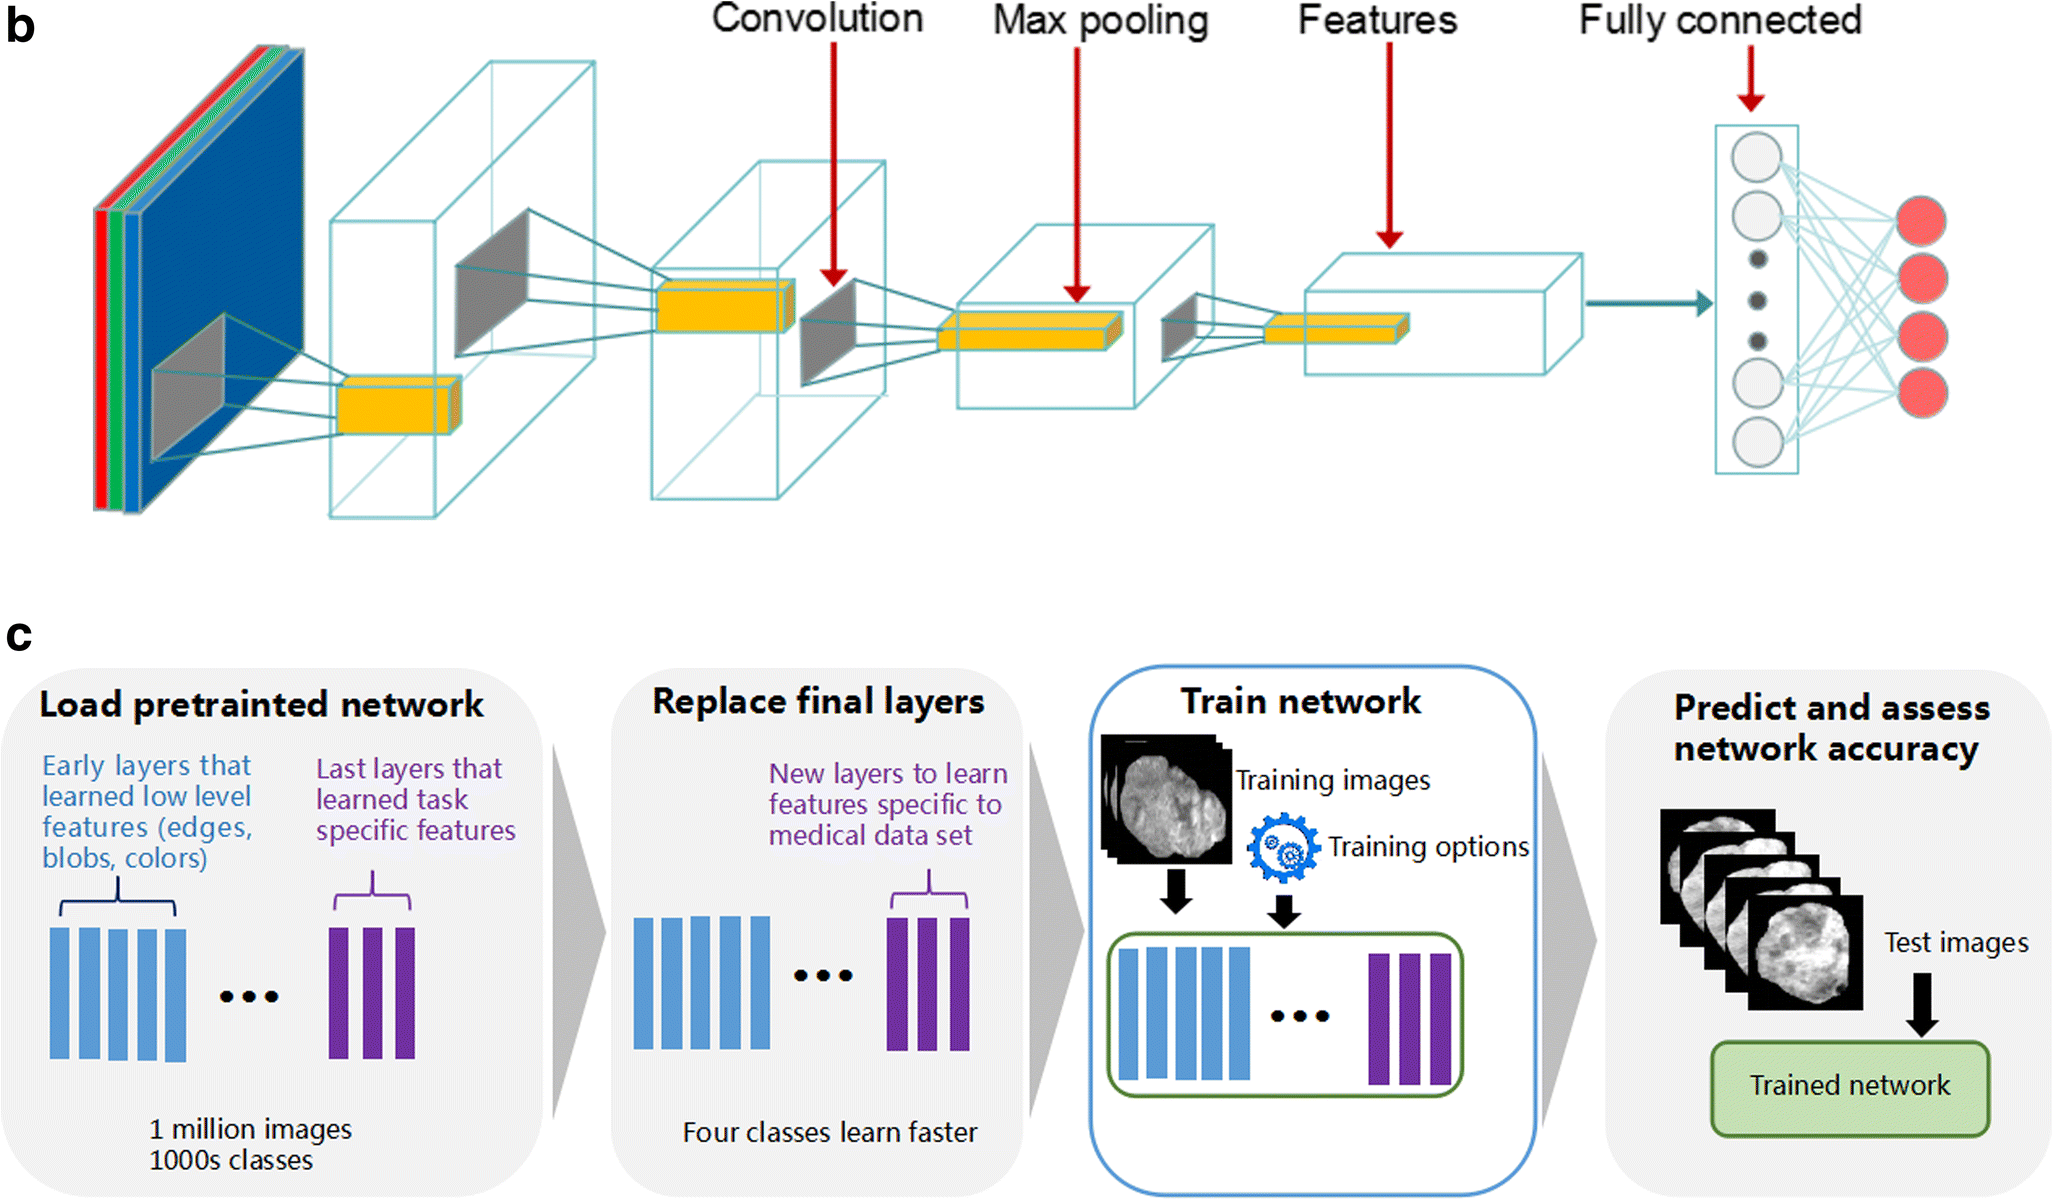 Residual convolutional neural network for predicting